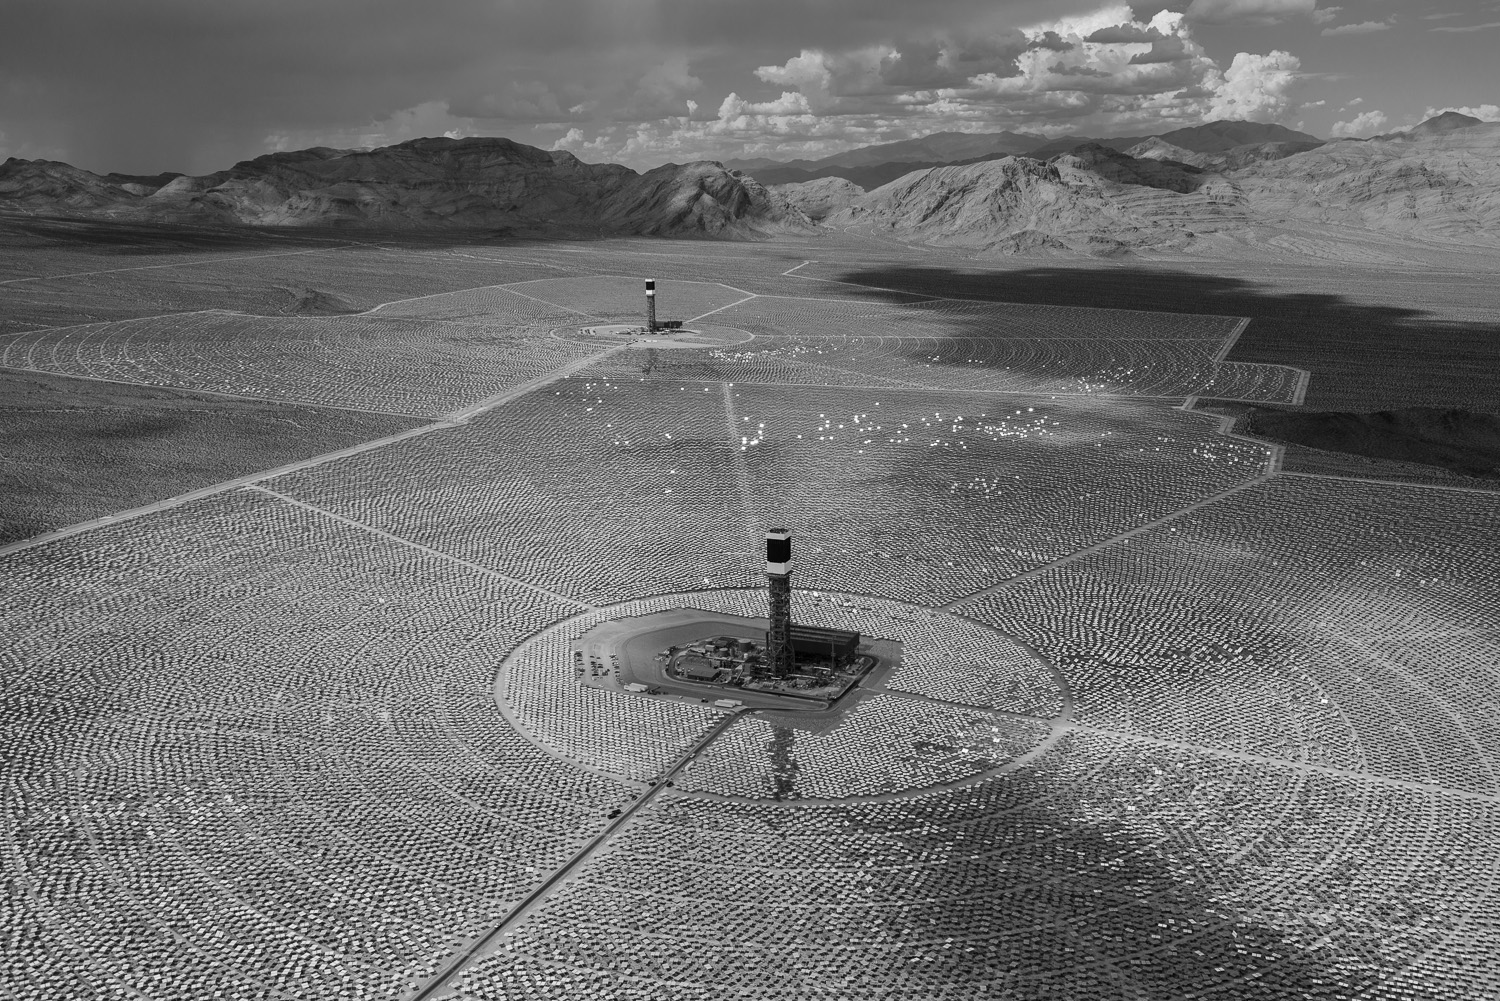 <i>Solar Fields Two and Three, 4 September 2013</i>A view to the northwest of the Ivanpah Solar  project's Solar Fields Two and Three. By the end of 2013, the project will deliver 377 megawatts of electricity to the grid, enought to power 140,000 American homes.